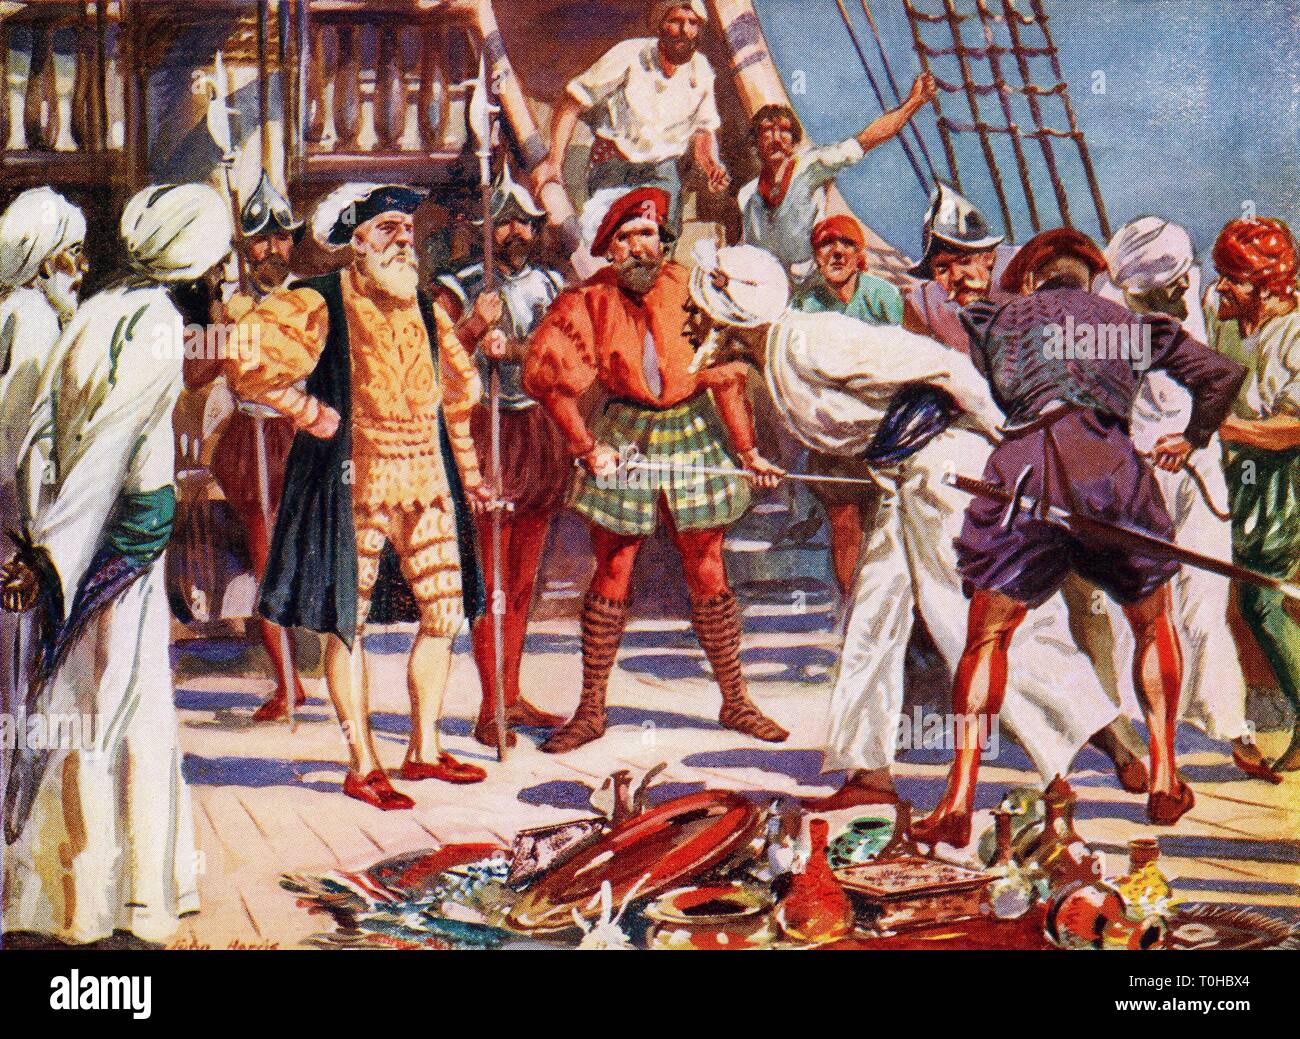 Merchants of Calicut held as hostages by Vasco Da Gama during voyage - Stock Image